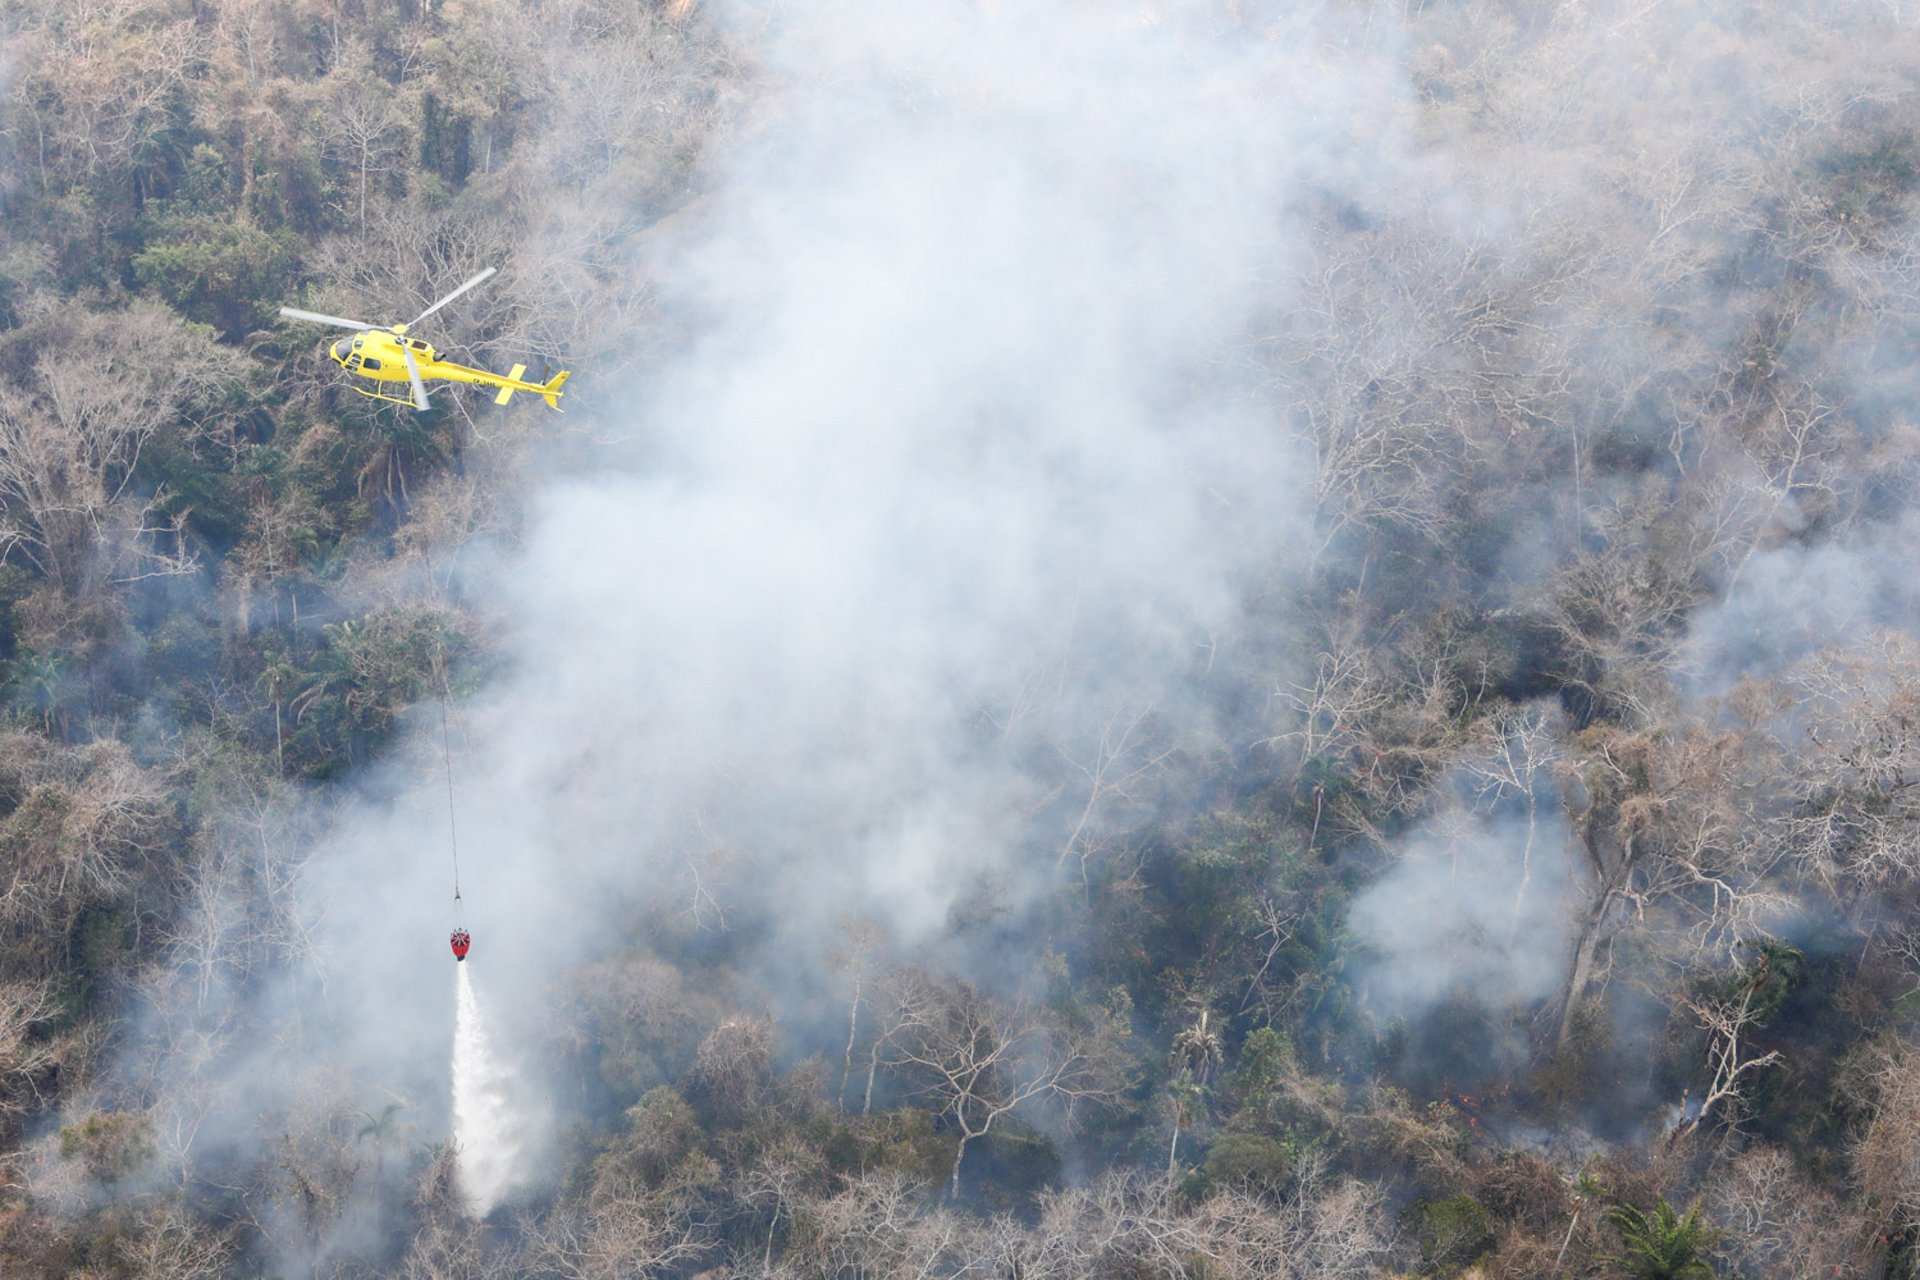 An H125 helicopter supports firefighting efforts with deployment of a bucket-type water dispersal system.